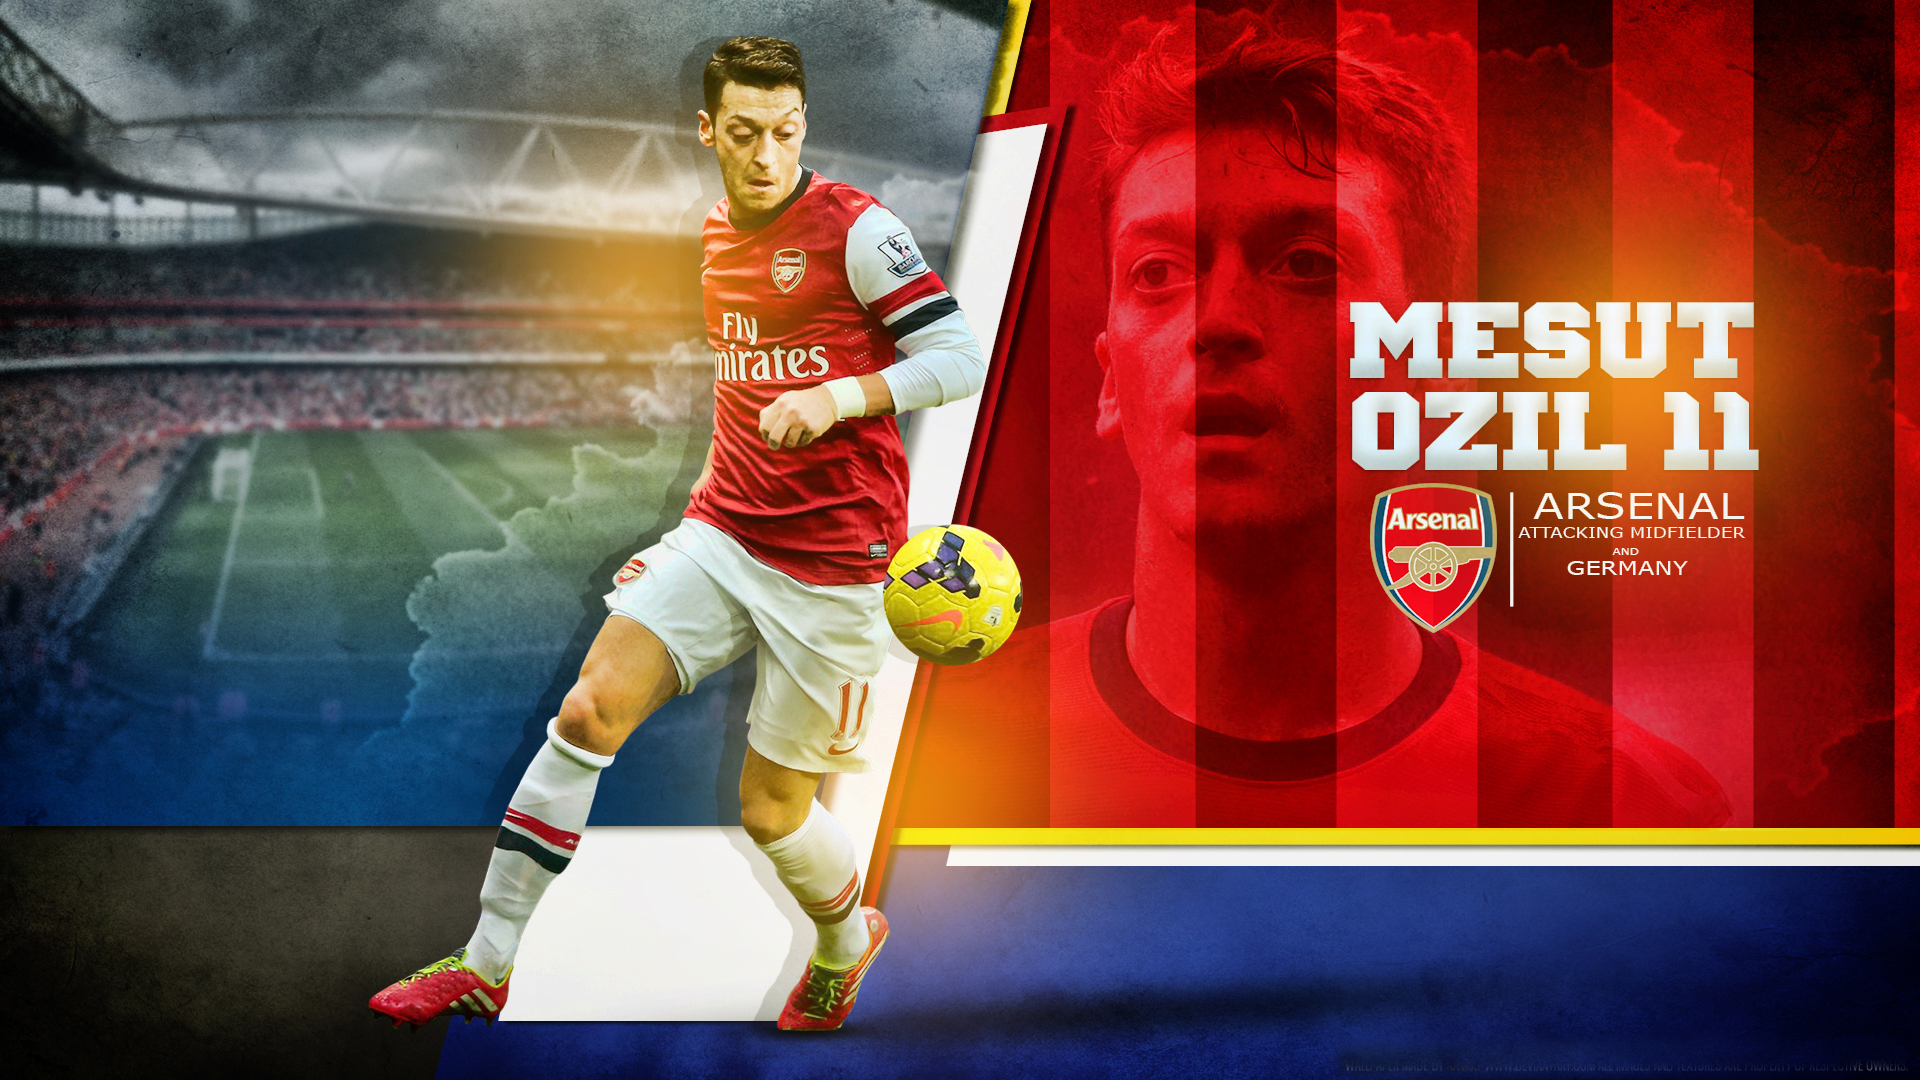 Download Latest Arsenal Wallpapers